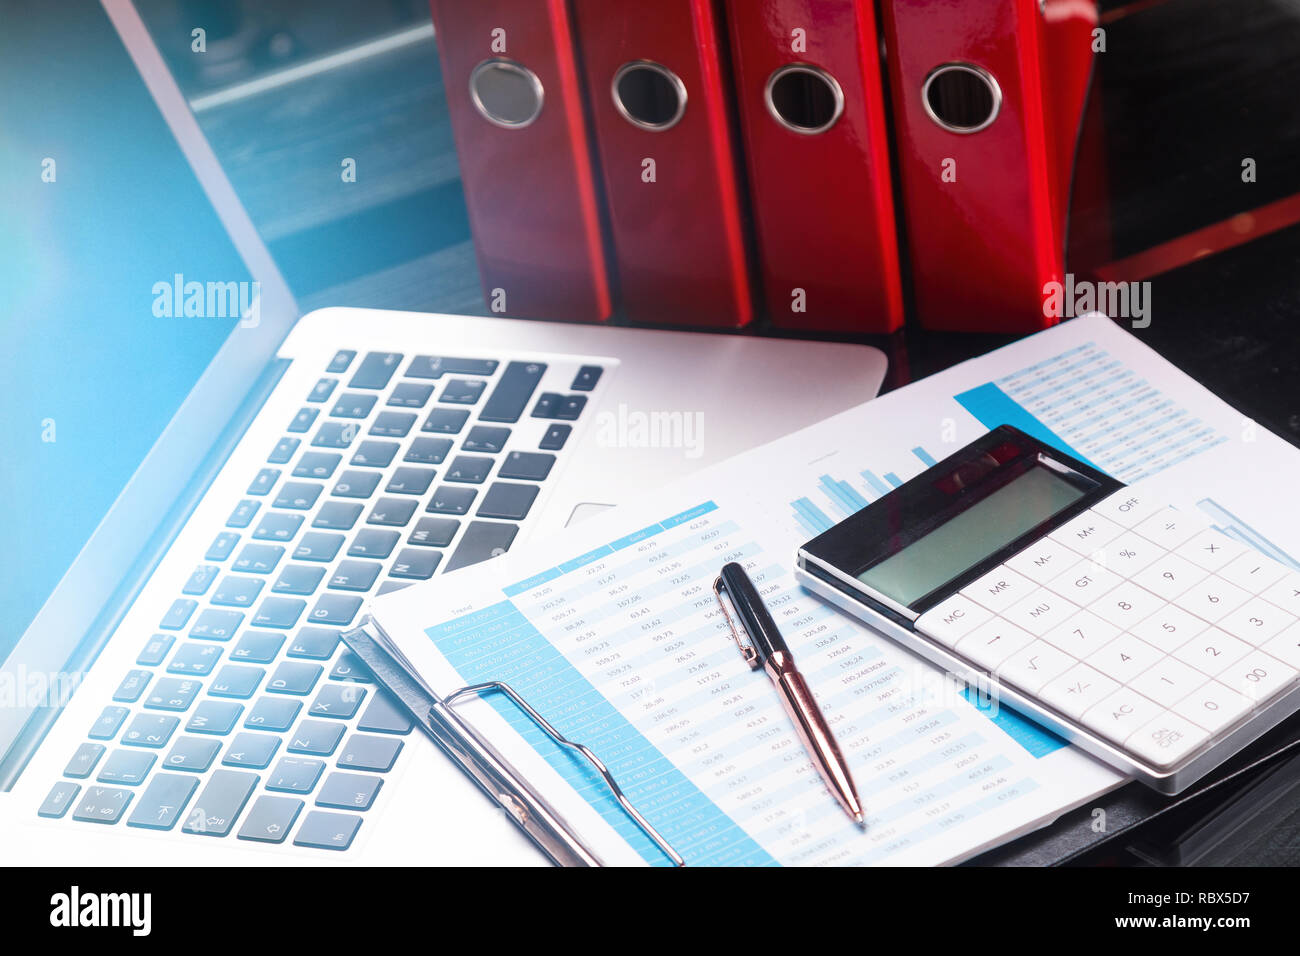 Office workplace with documents and stationery near red folders - Stock Image